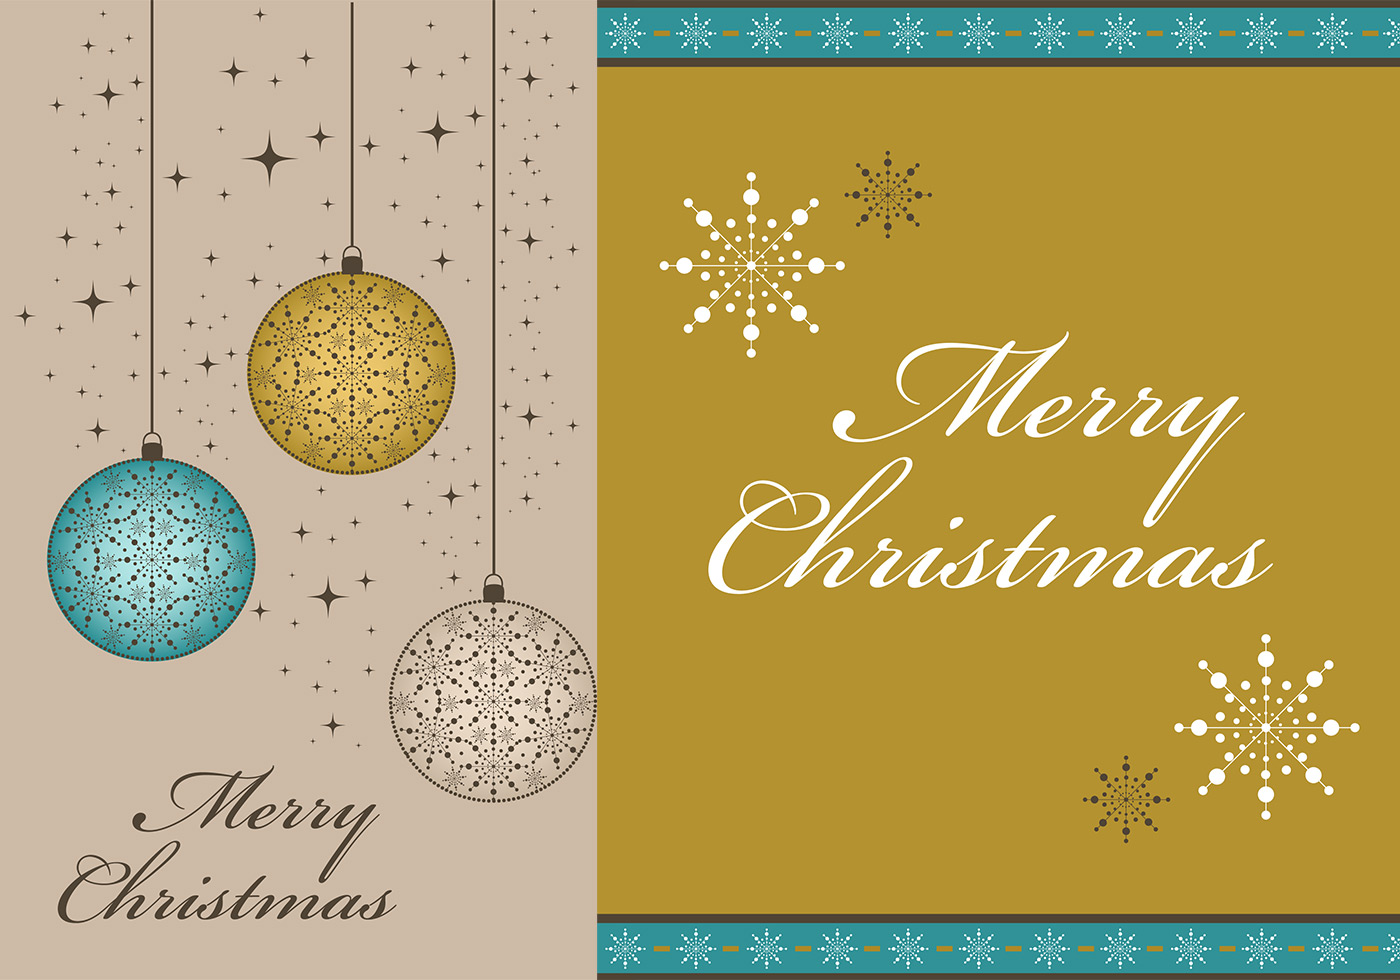 merry christmas vector wallpaper and border pack - download free